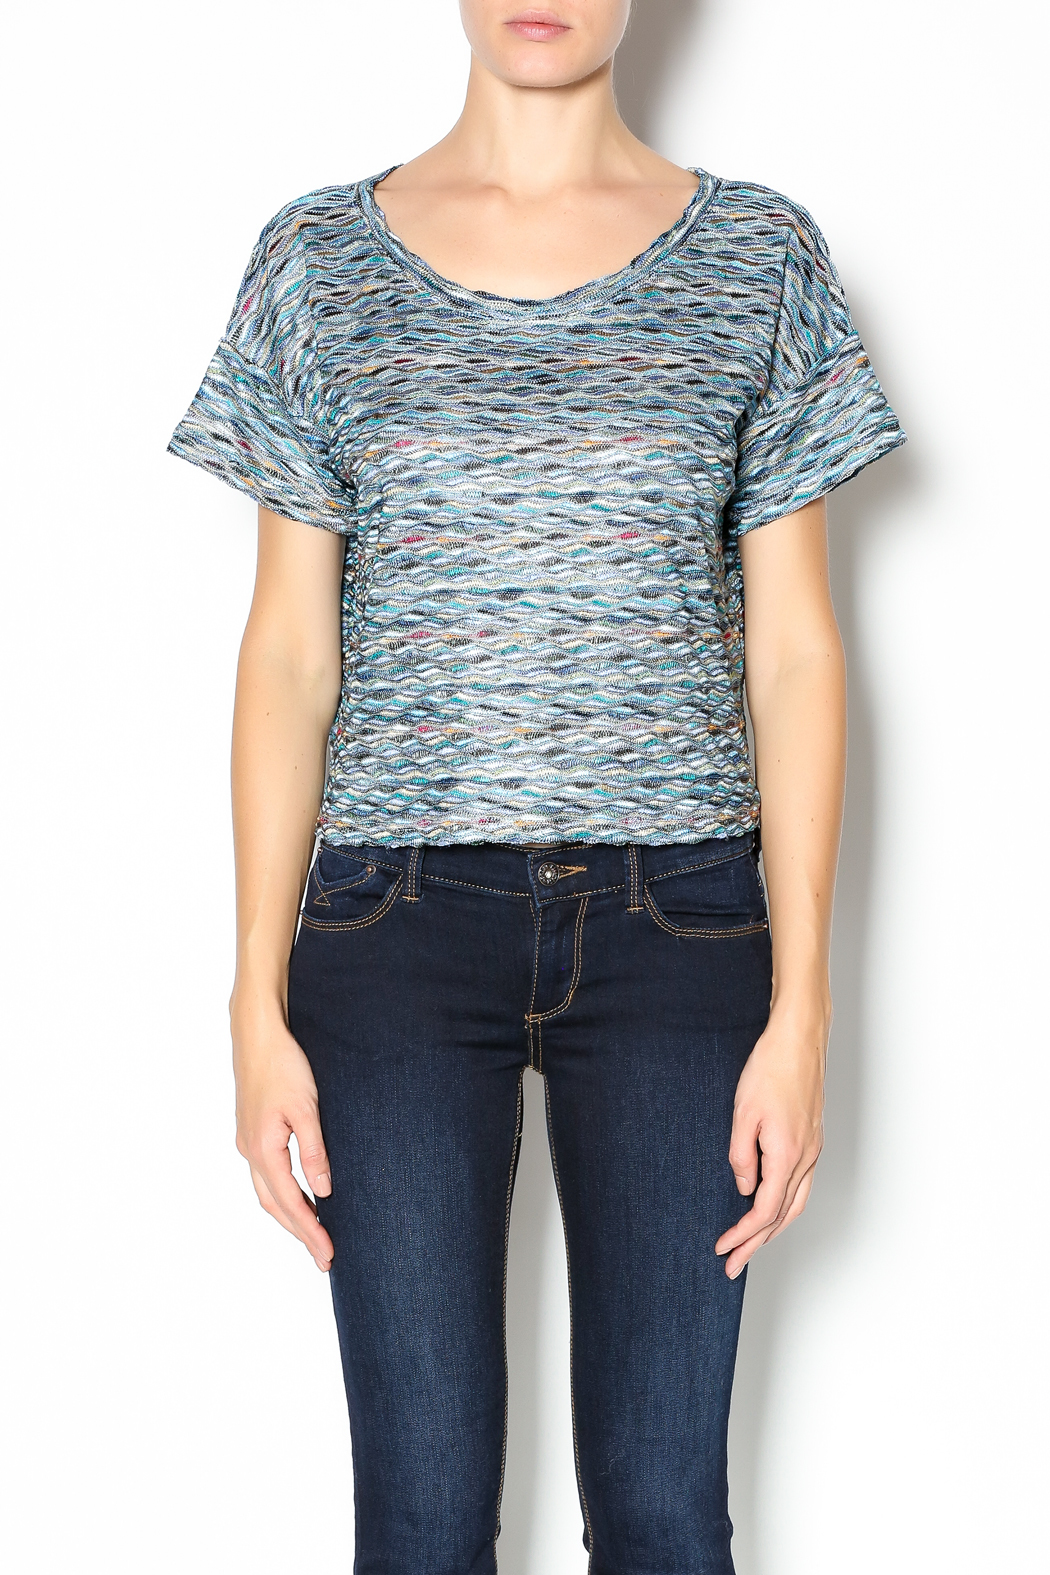 Free People Rainbow Wave Box Tee - Front Cropped Image